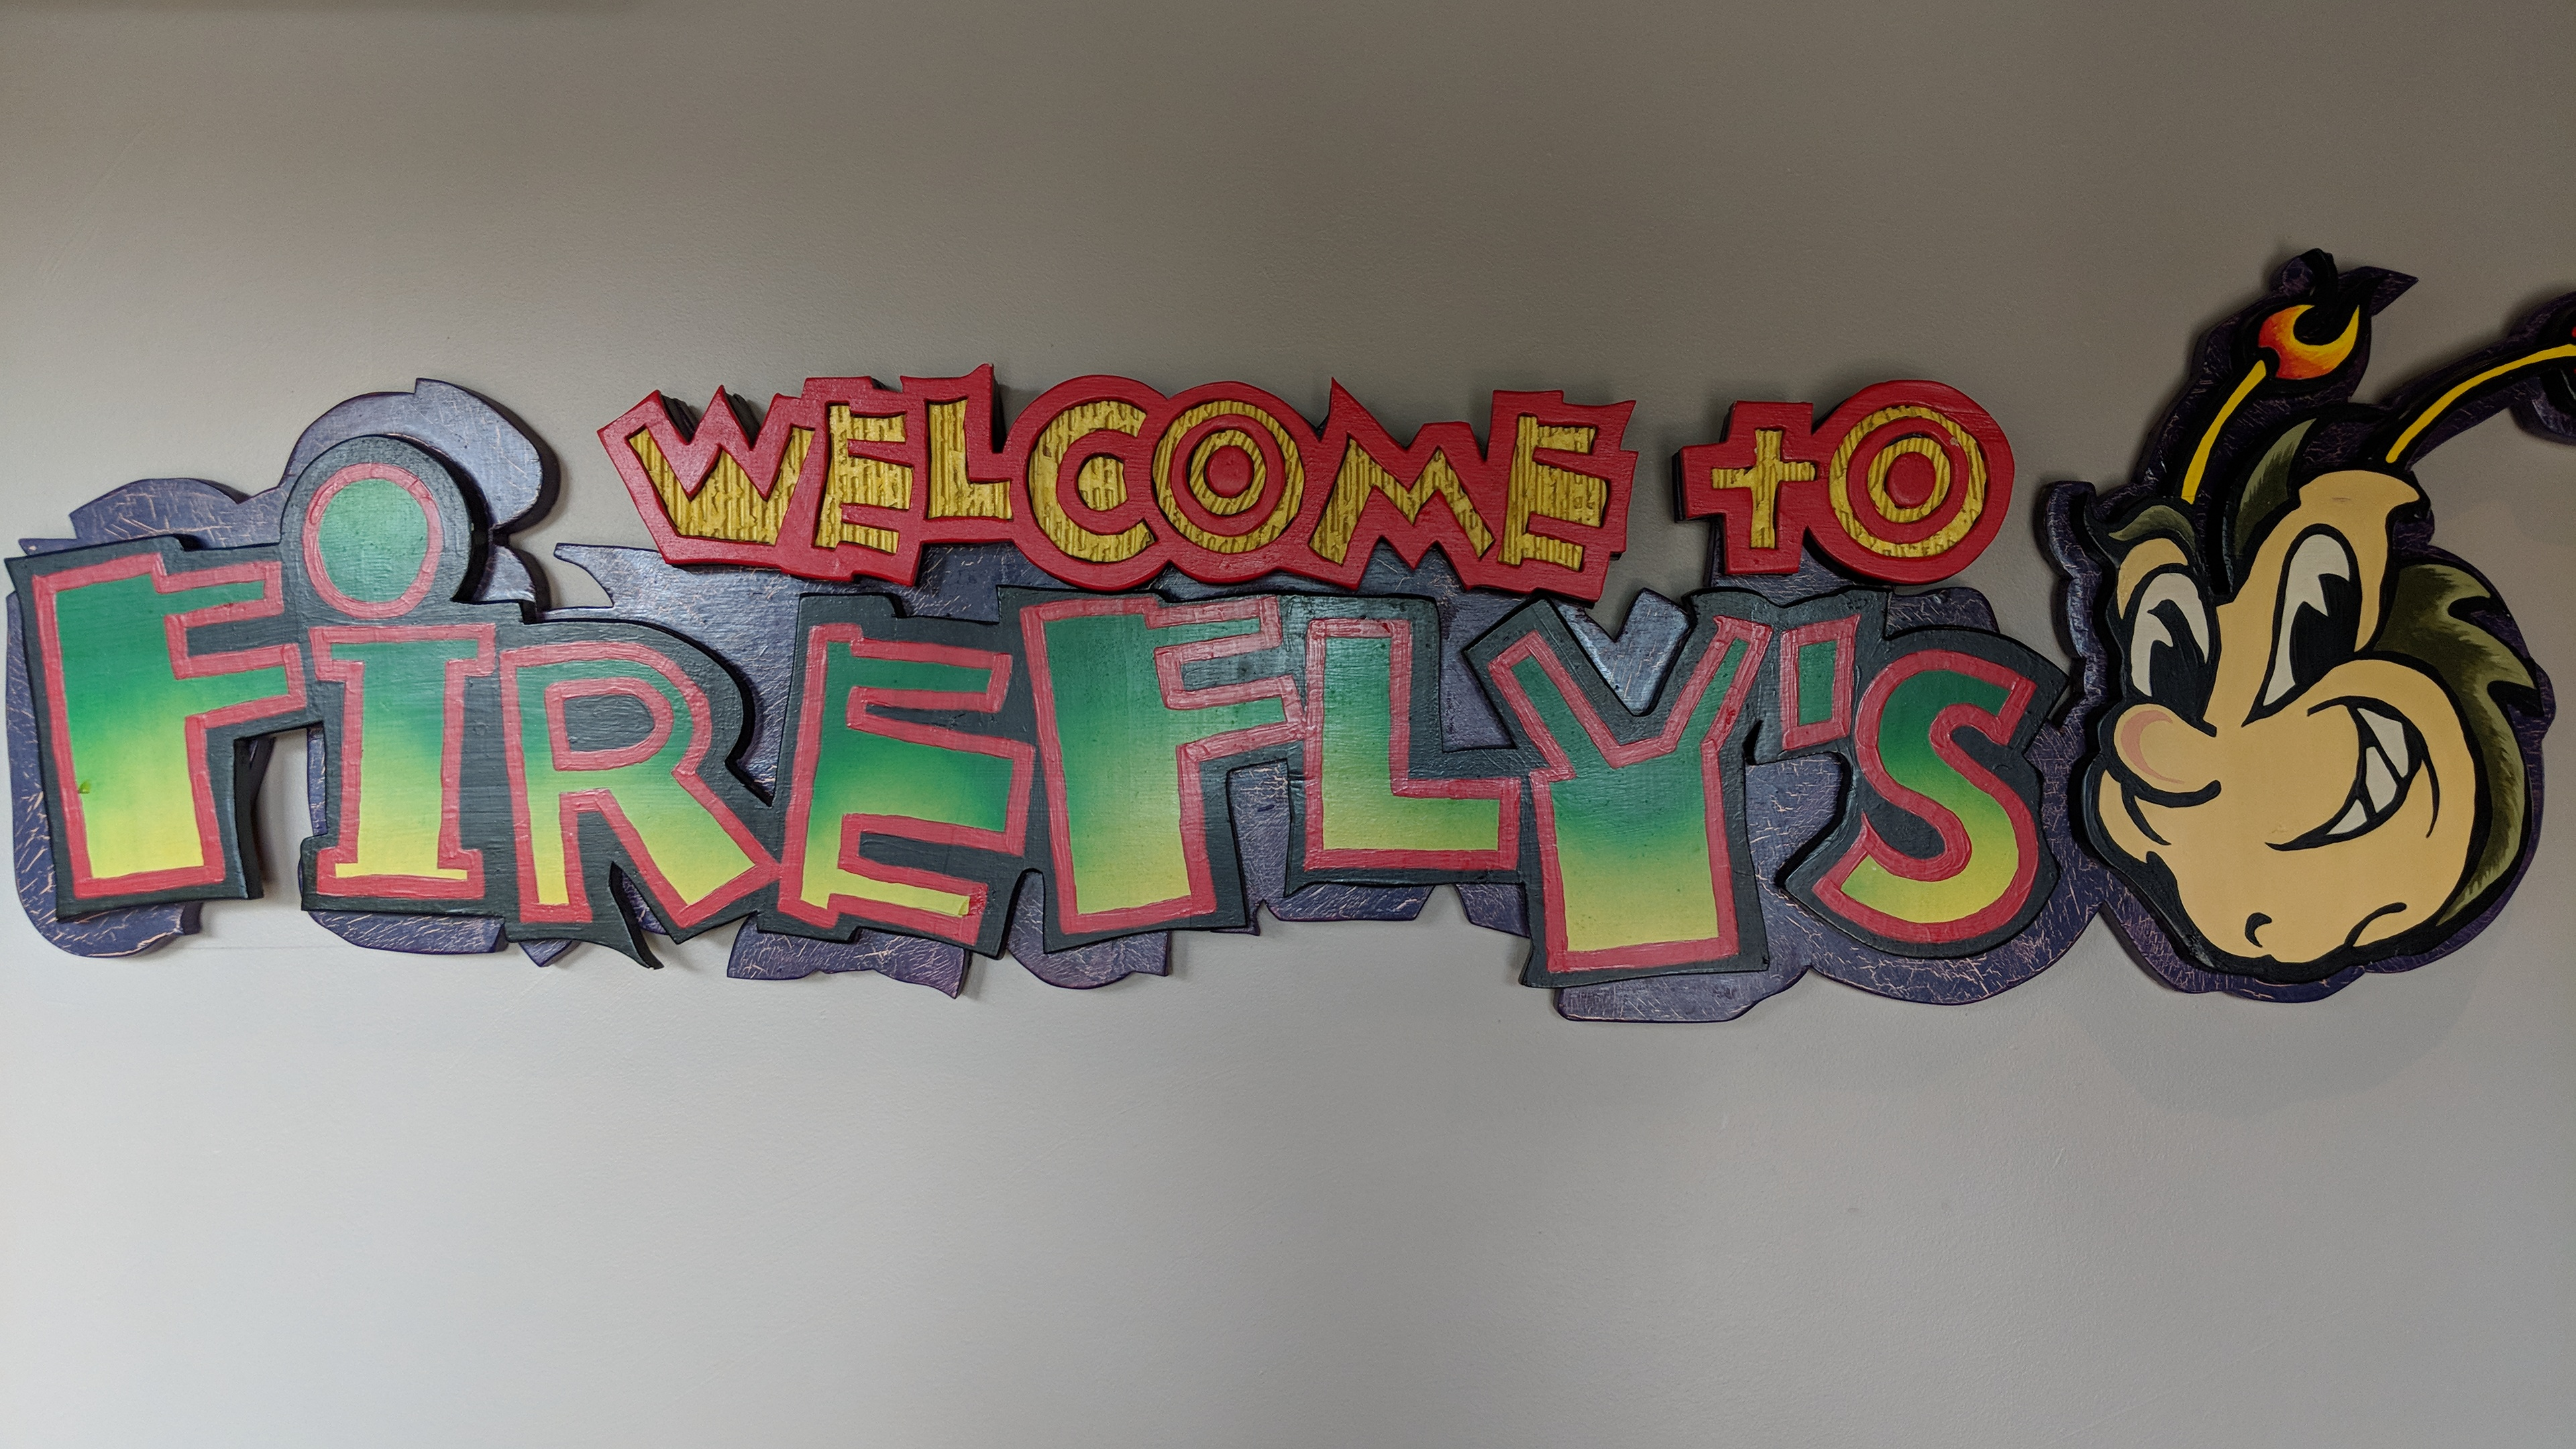 Welcome to Fireflys BBQ